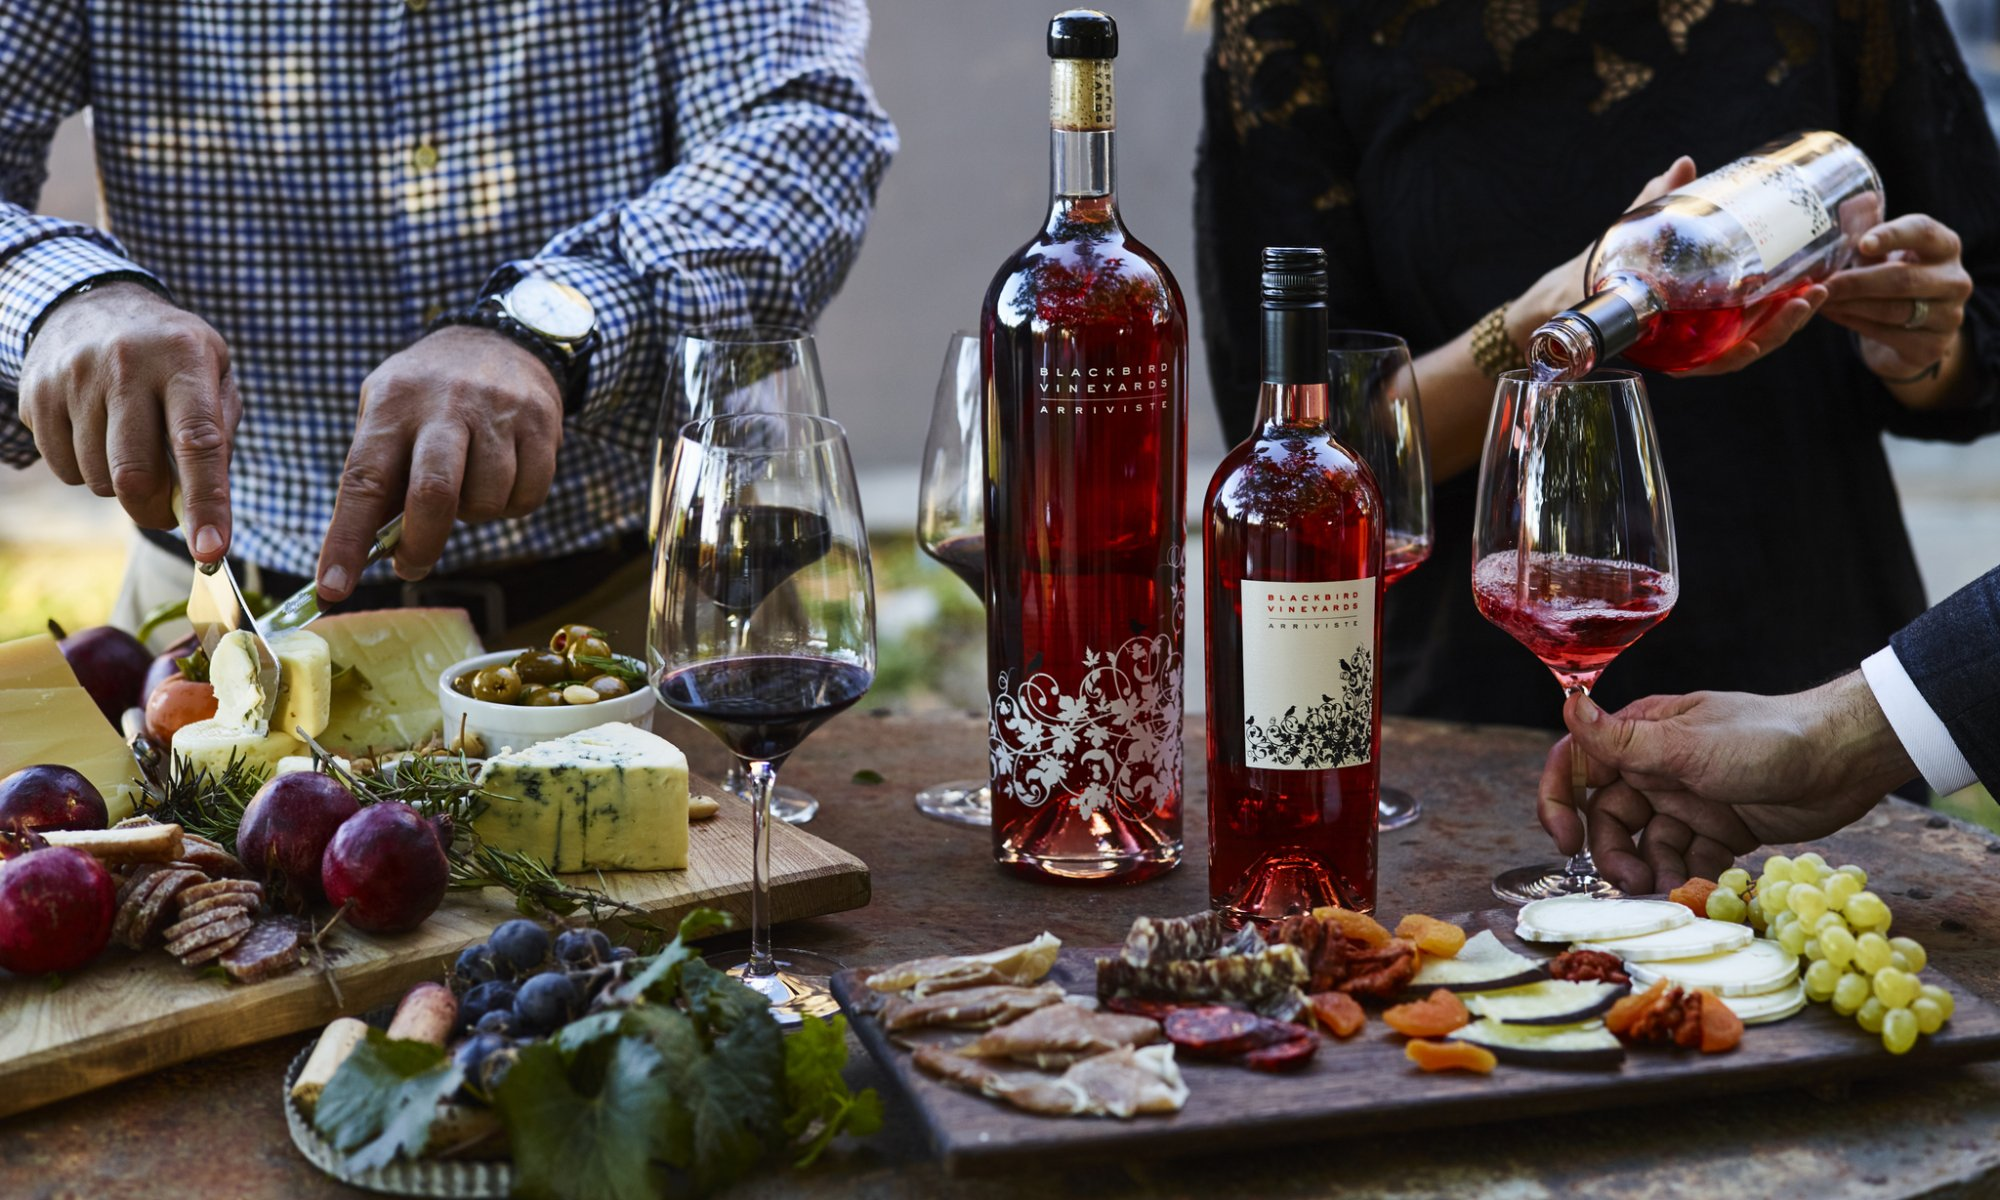 Bottles of wine, glasses of wine and charcuterie boards on a table